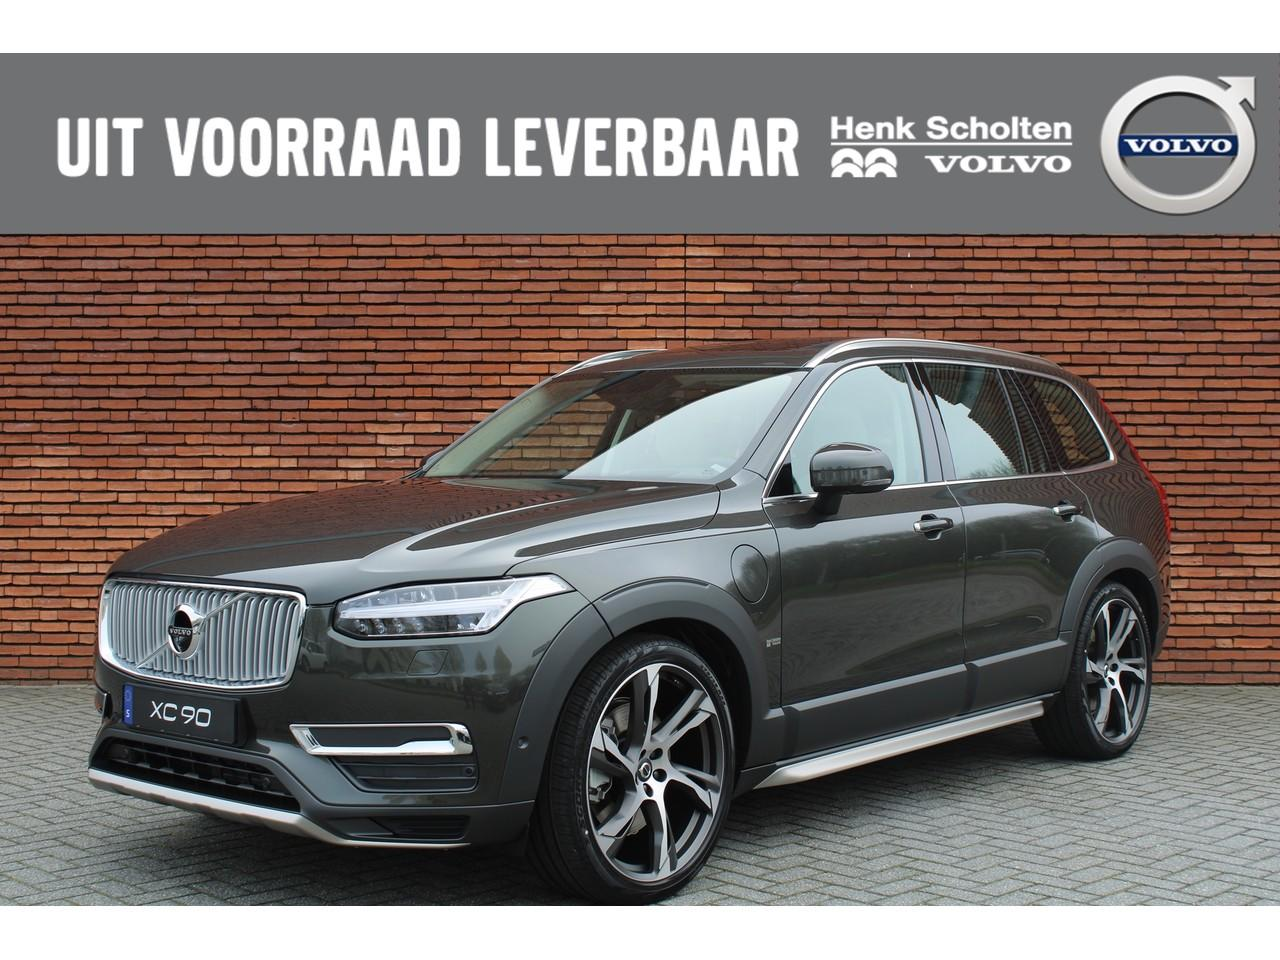 Volvo Xc90 T8 twin engine plug-in hybrid awd inscription